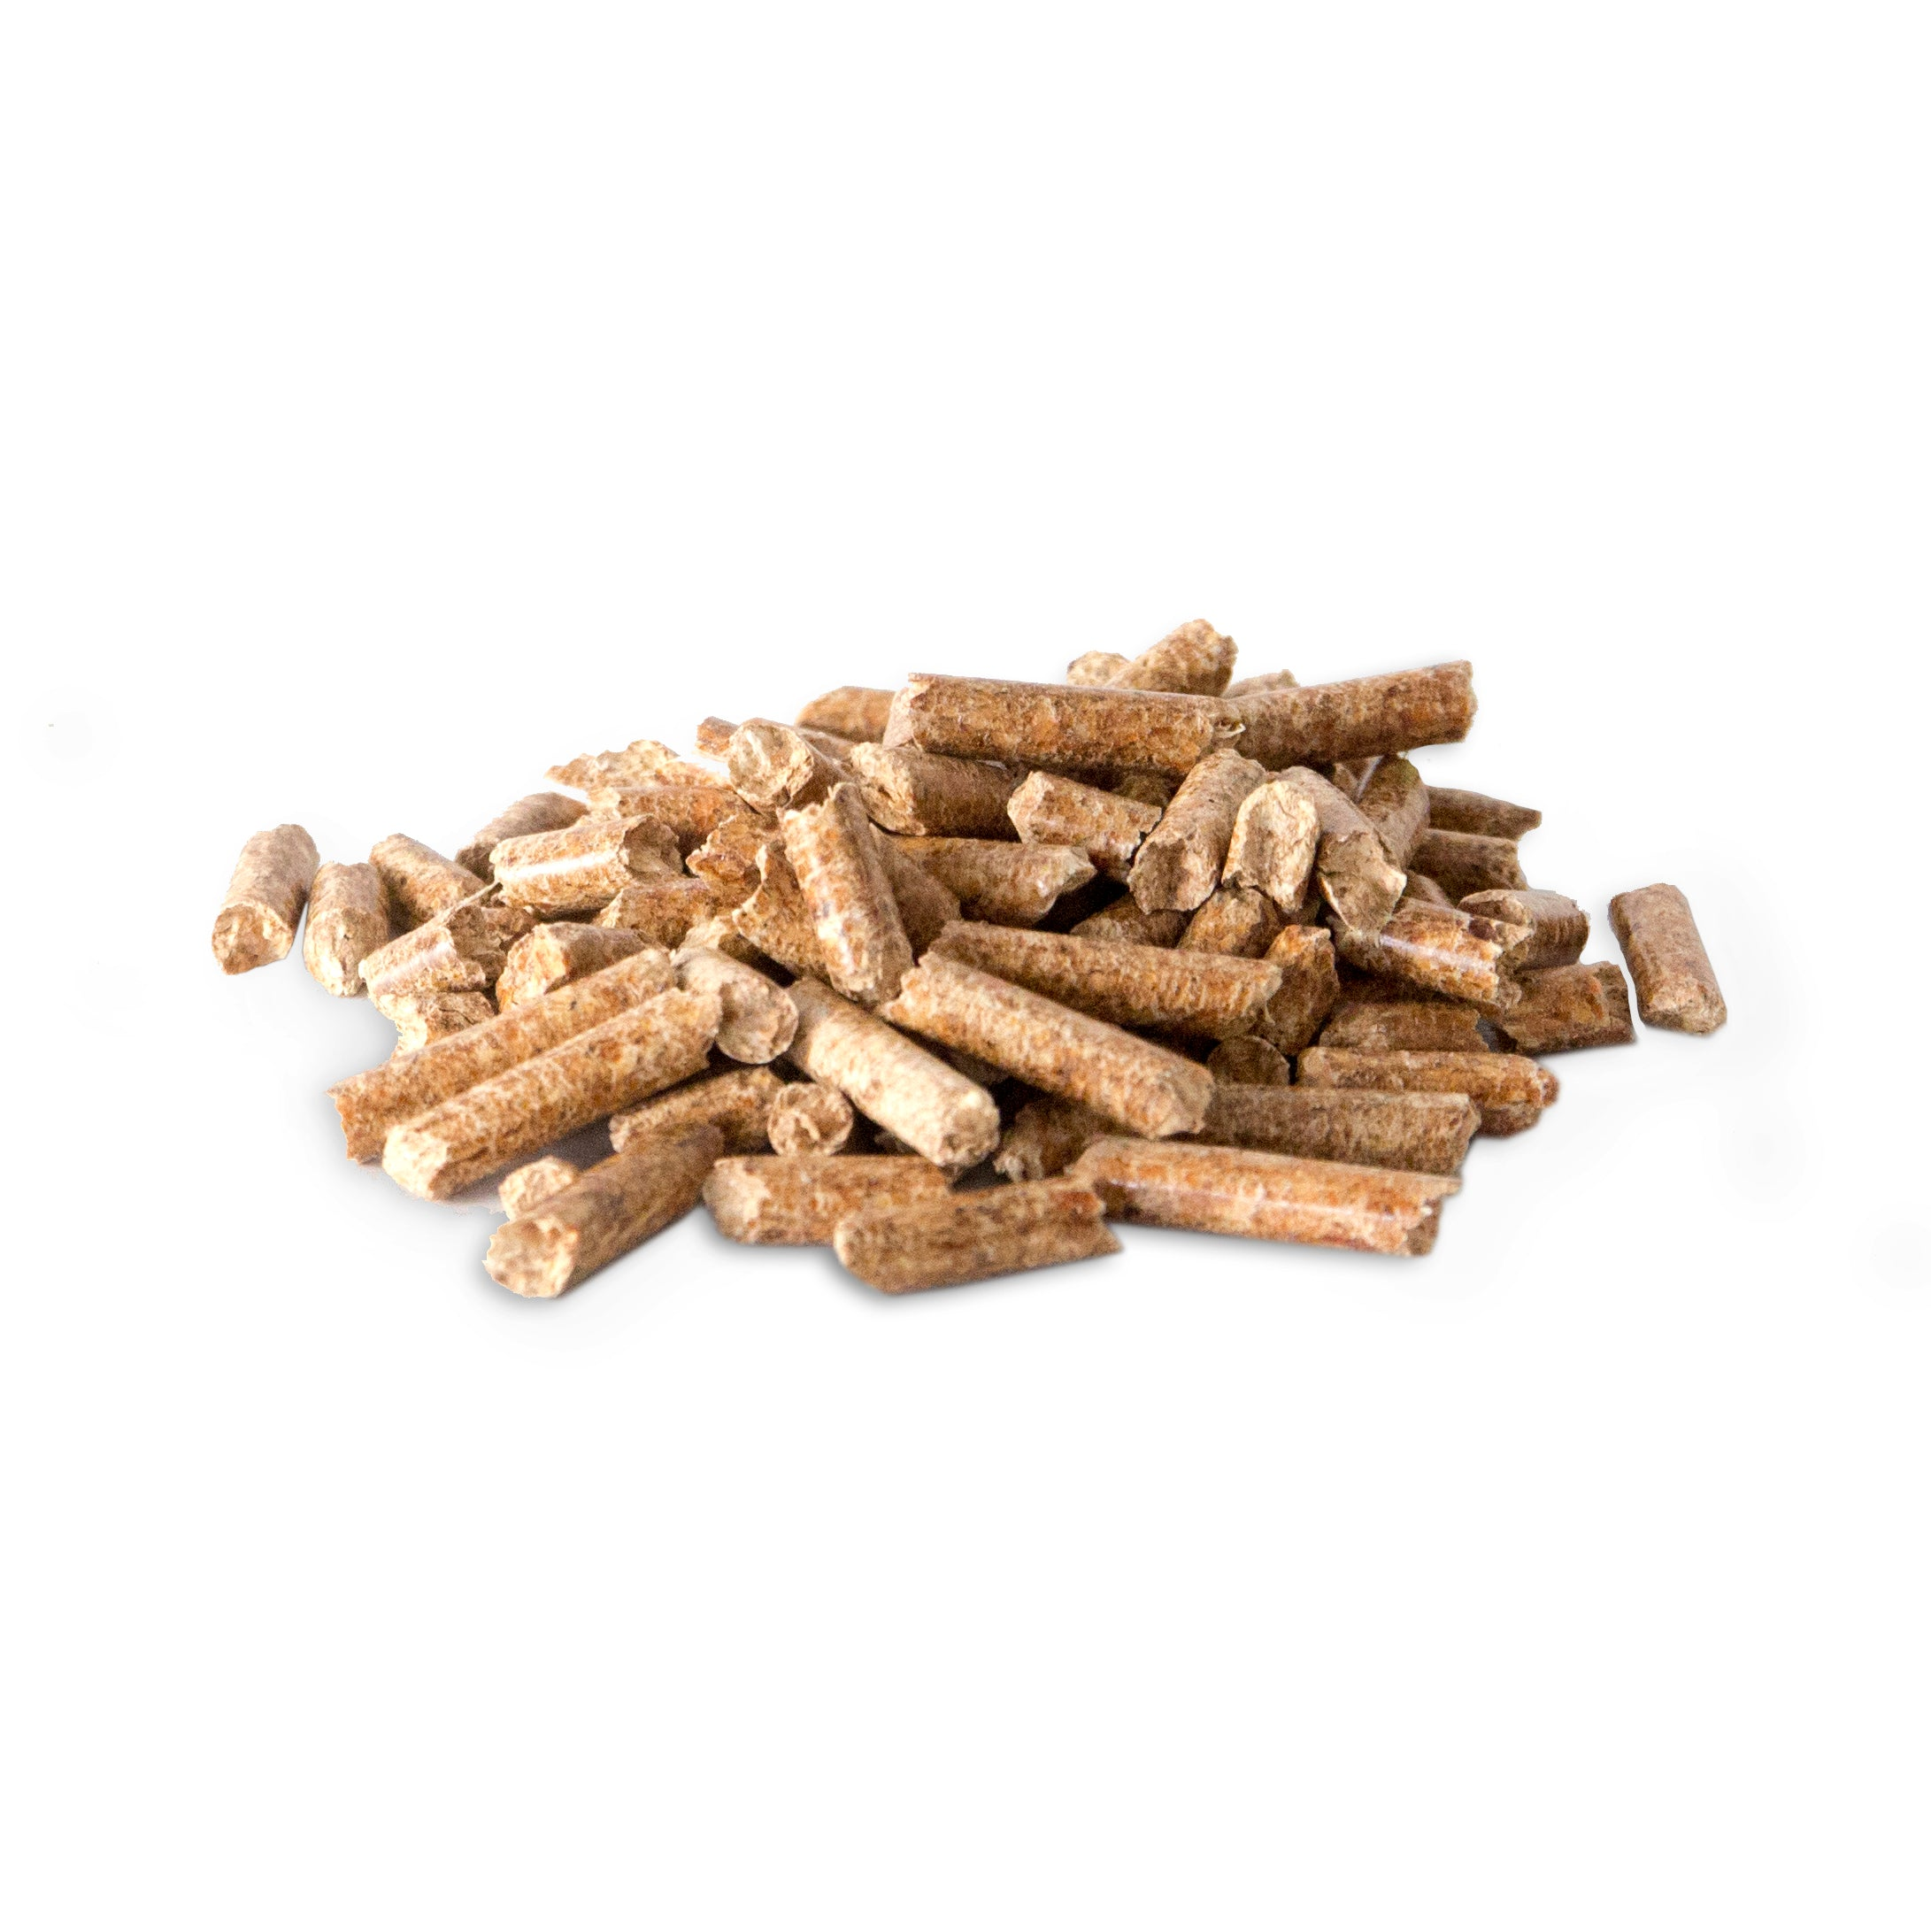 Dry Den Premium Pelletized Animal Bedding